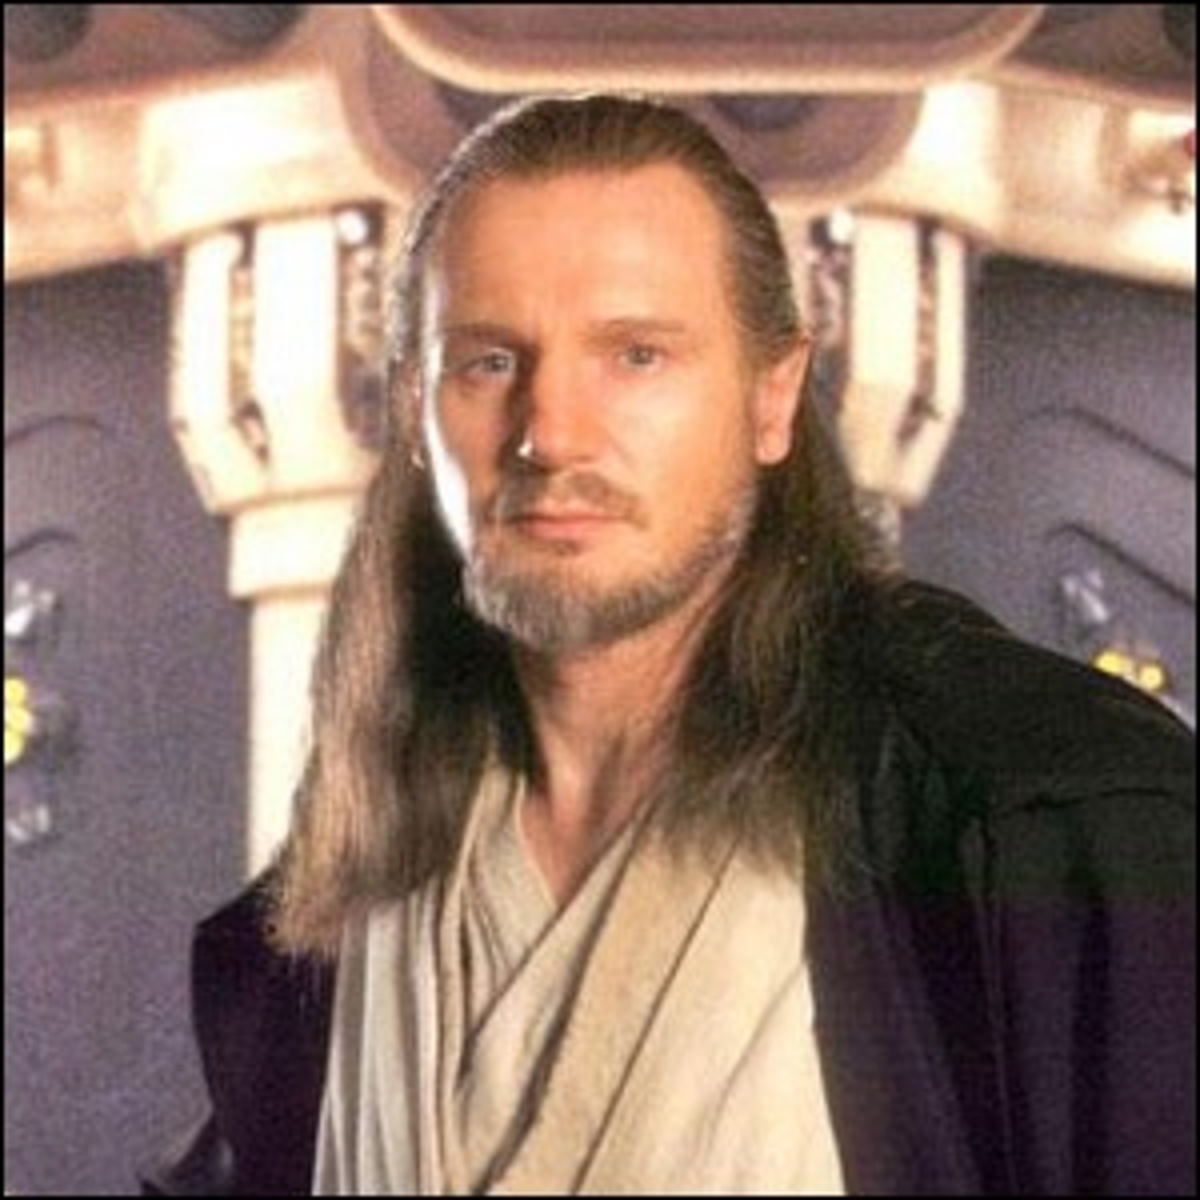 Liam Neeson on the set of Star Wars: The Phantom Menace.